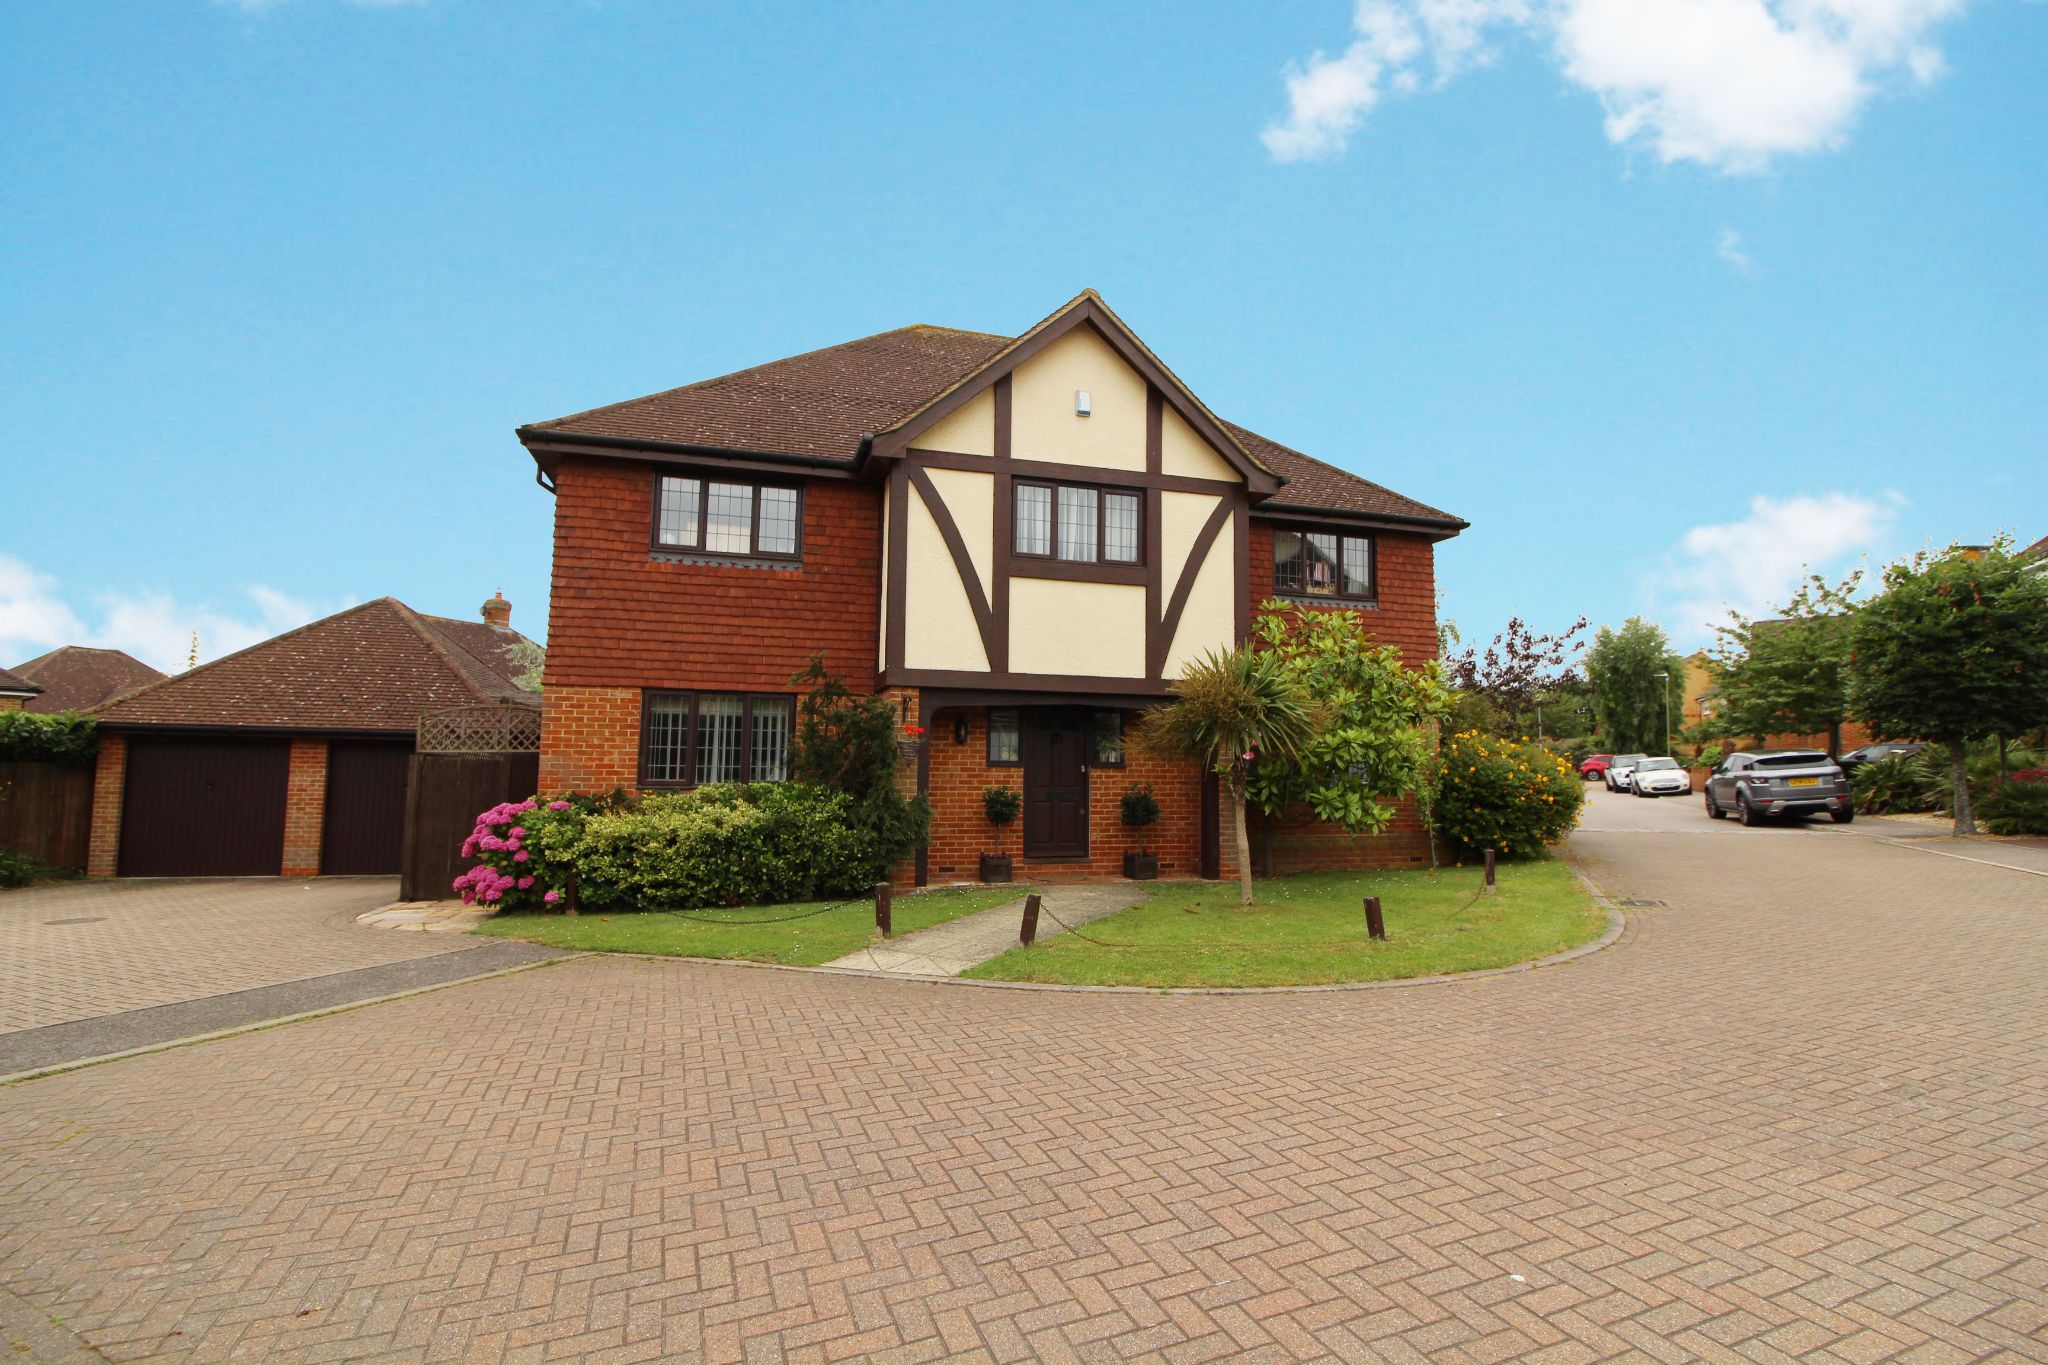 5 bedroom detached house For Sale in West Cheshunt - Property photograph